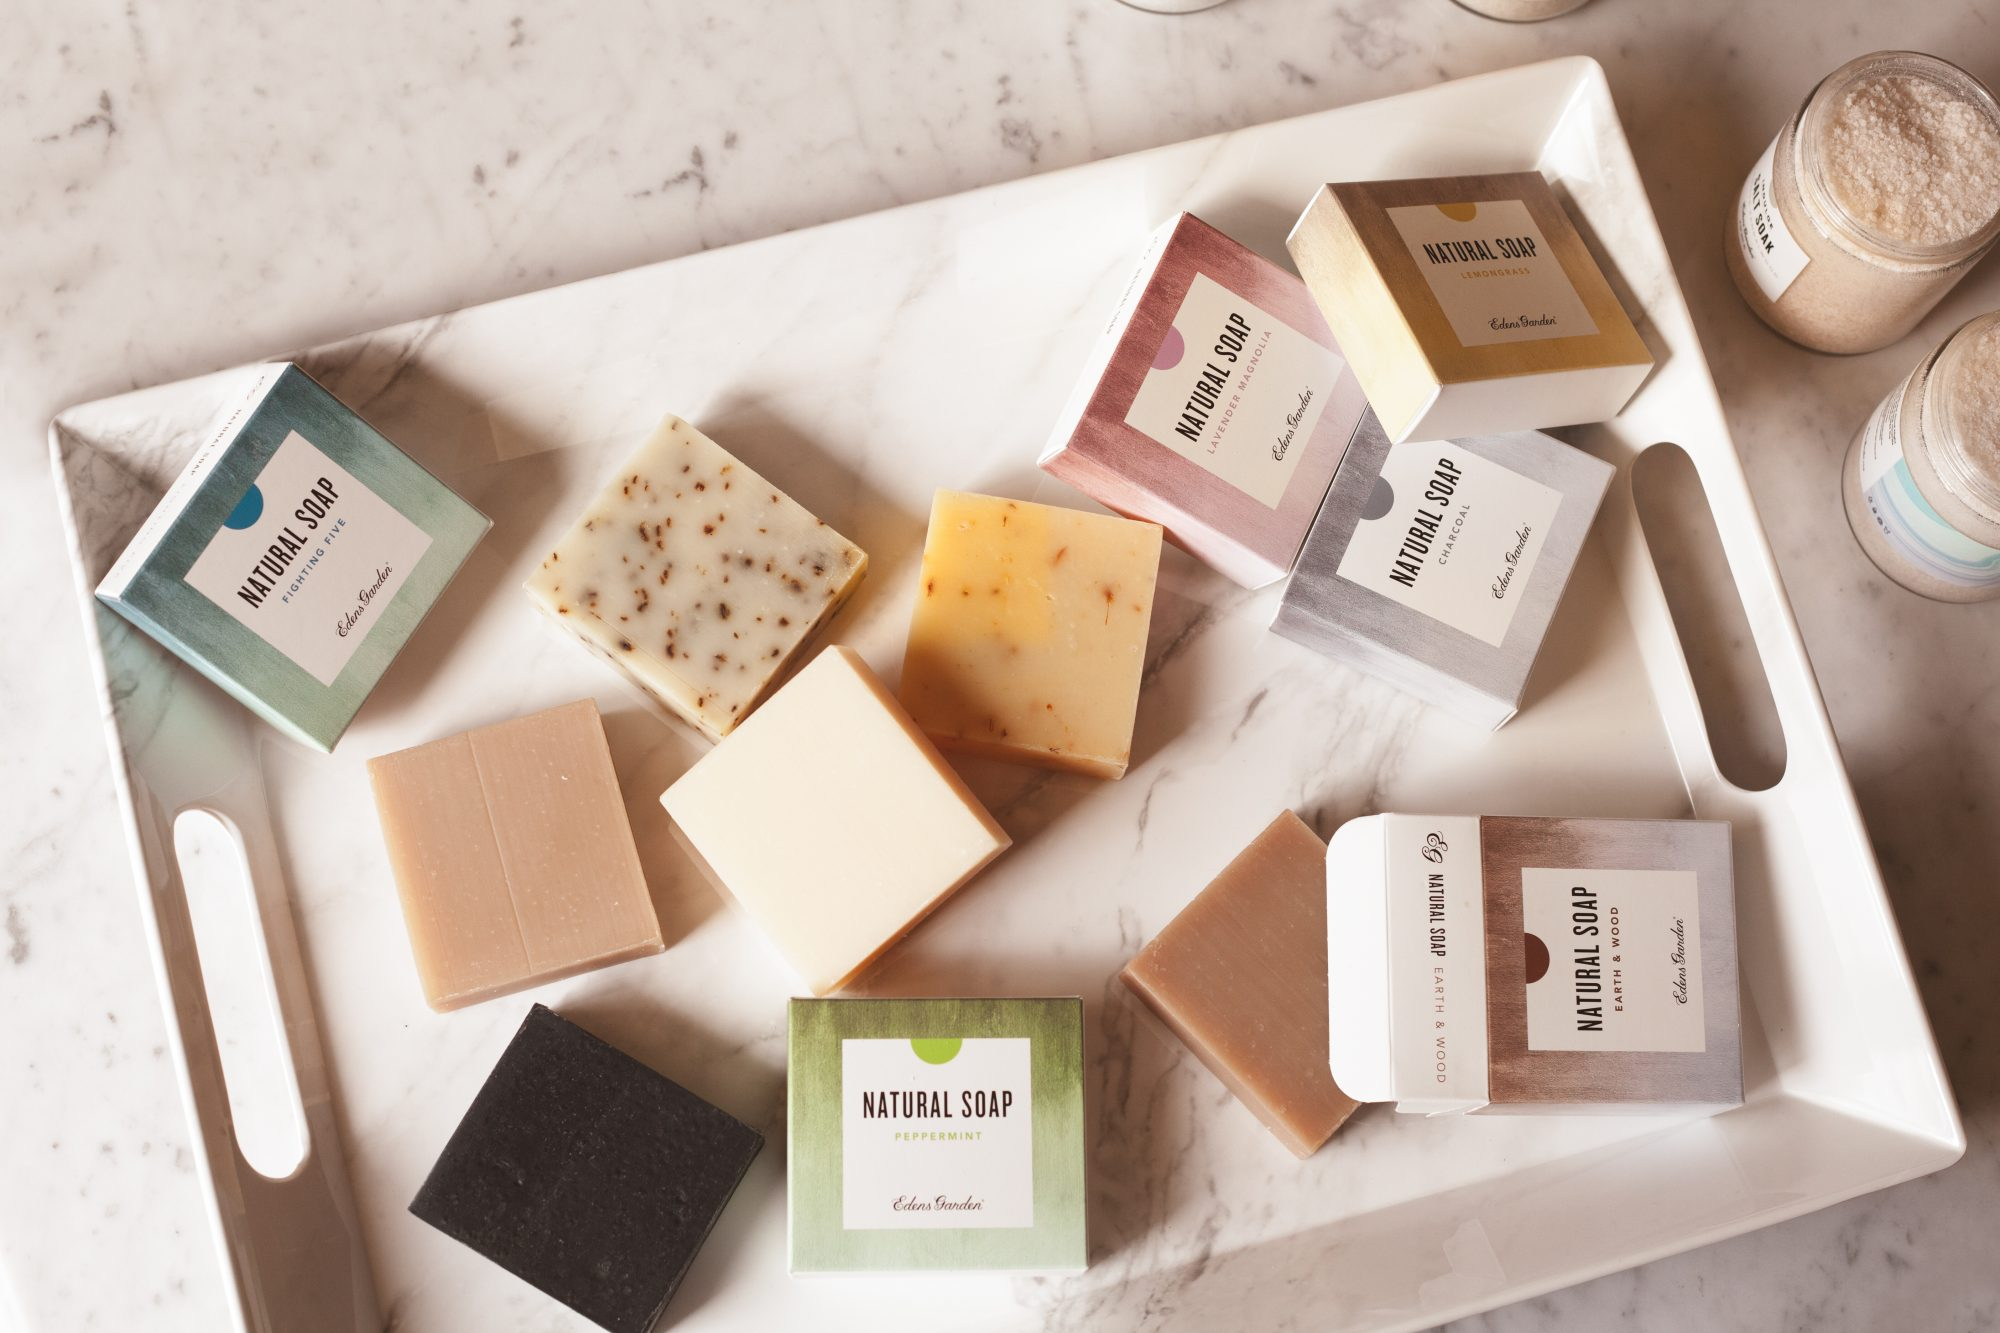 Unlike most natural bar soaps, Edens Garden bar soaps aren't stripping at all. They're extremely hydrating and thanks to the 100% pure essential oils, the fragrance lasts forever! - www.theballeronabudget.com